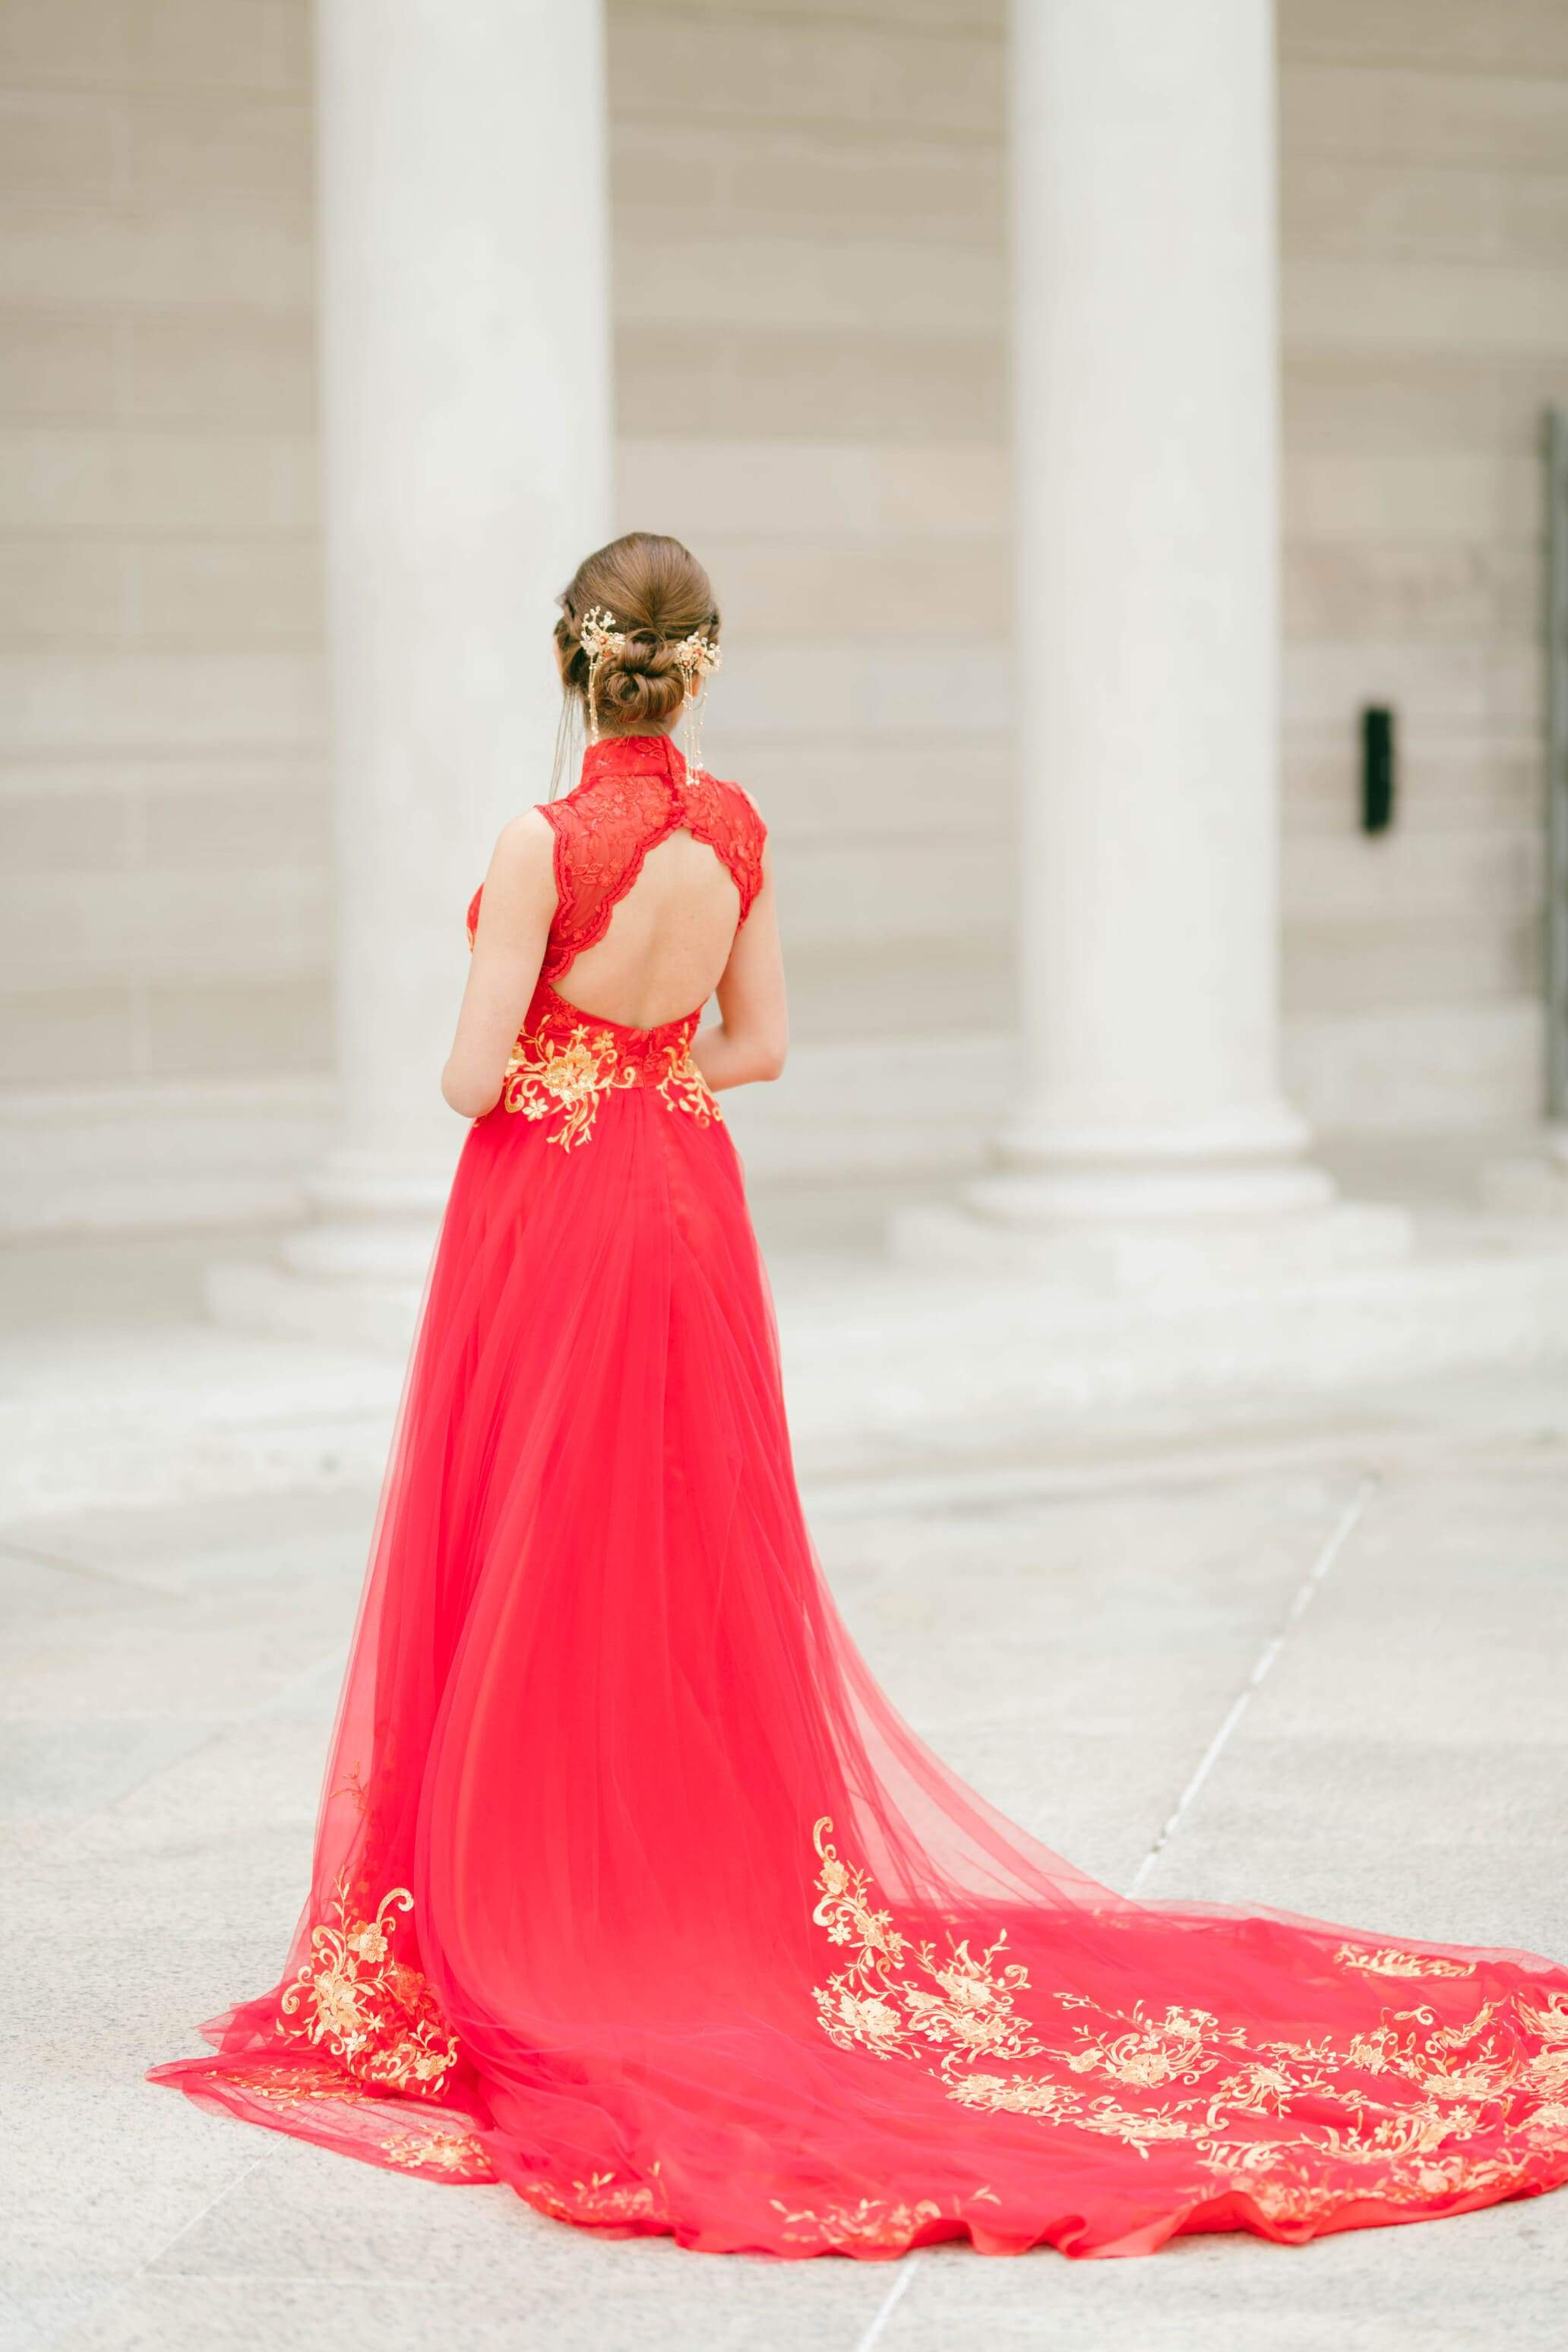 Mindy Bespoke Dress | Red & Gold Chinese Wedding Dress